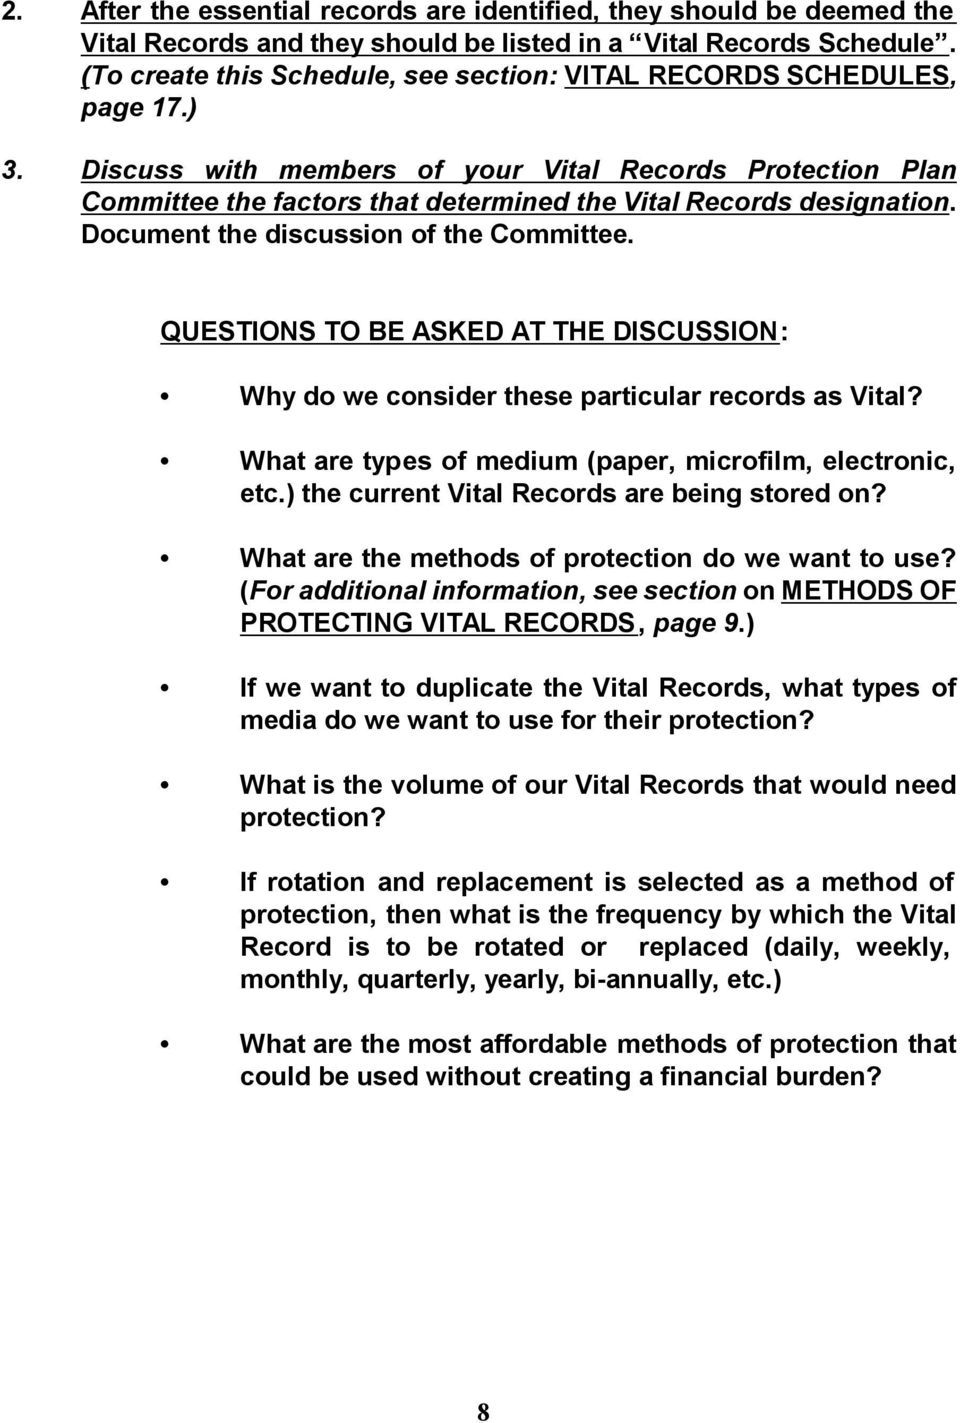 Discuss with members of your Vital Records Protection Plan Committee the factors that determined the Vital Records designation. Document the discussion of the Committee.